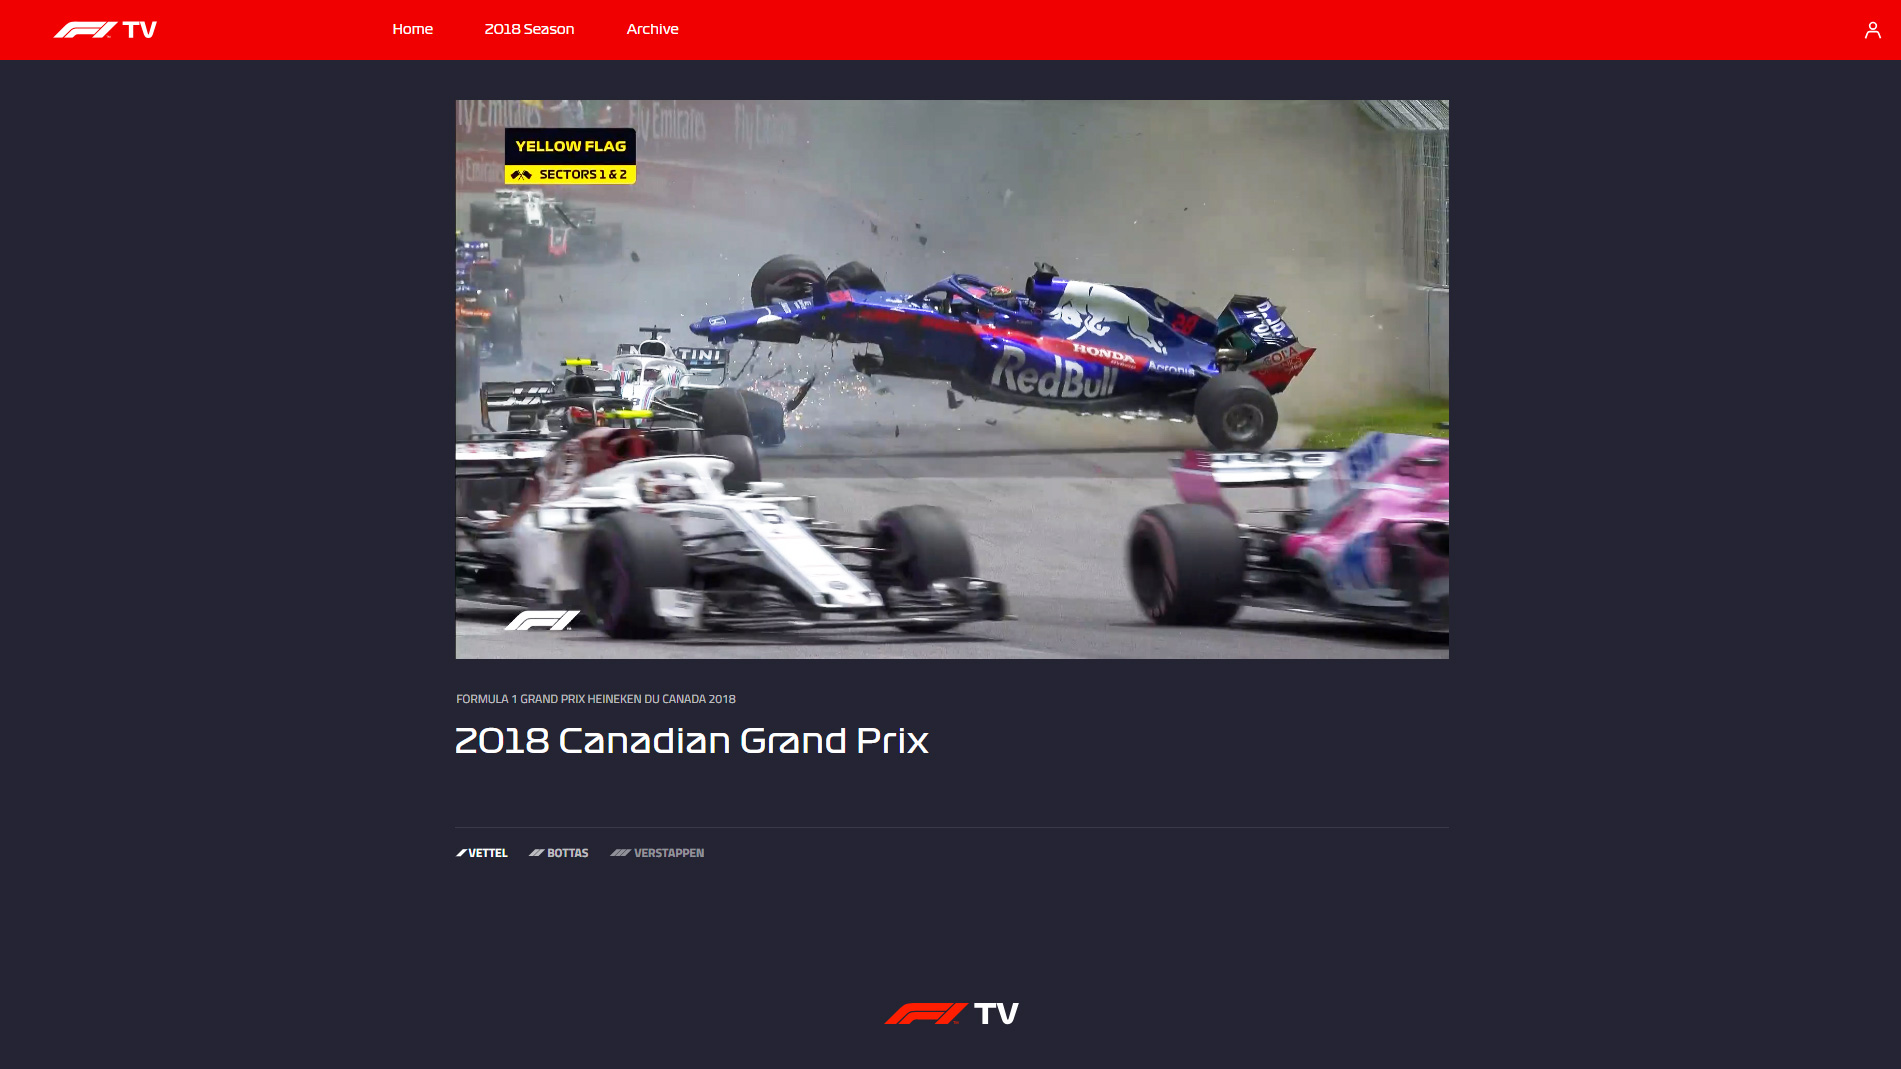 F1 TV Pro is amateur viewing - for now · RaceFans